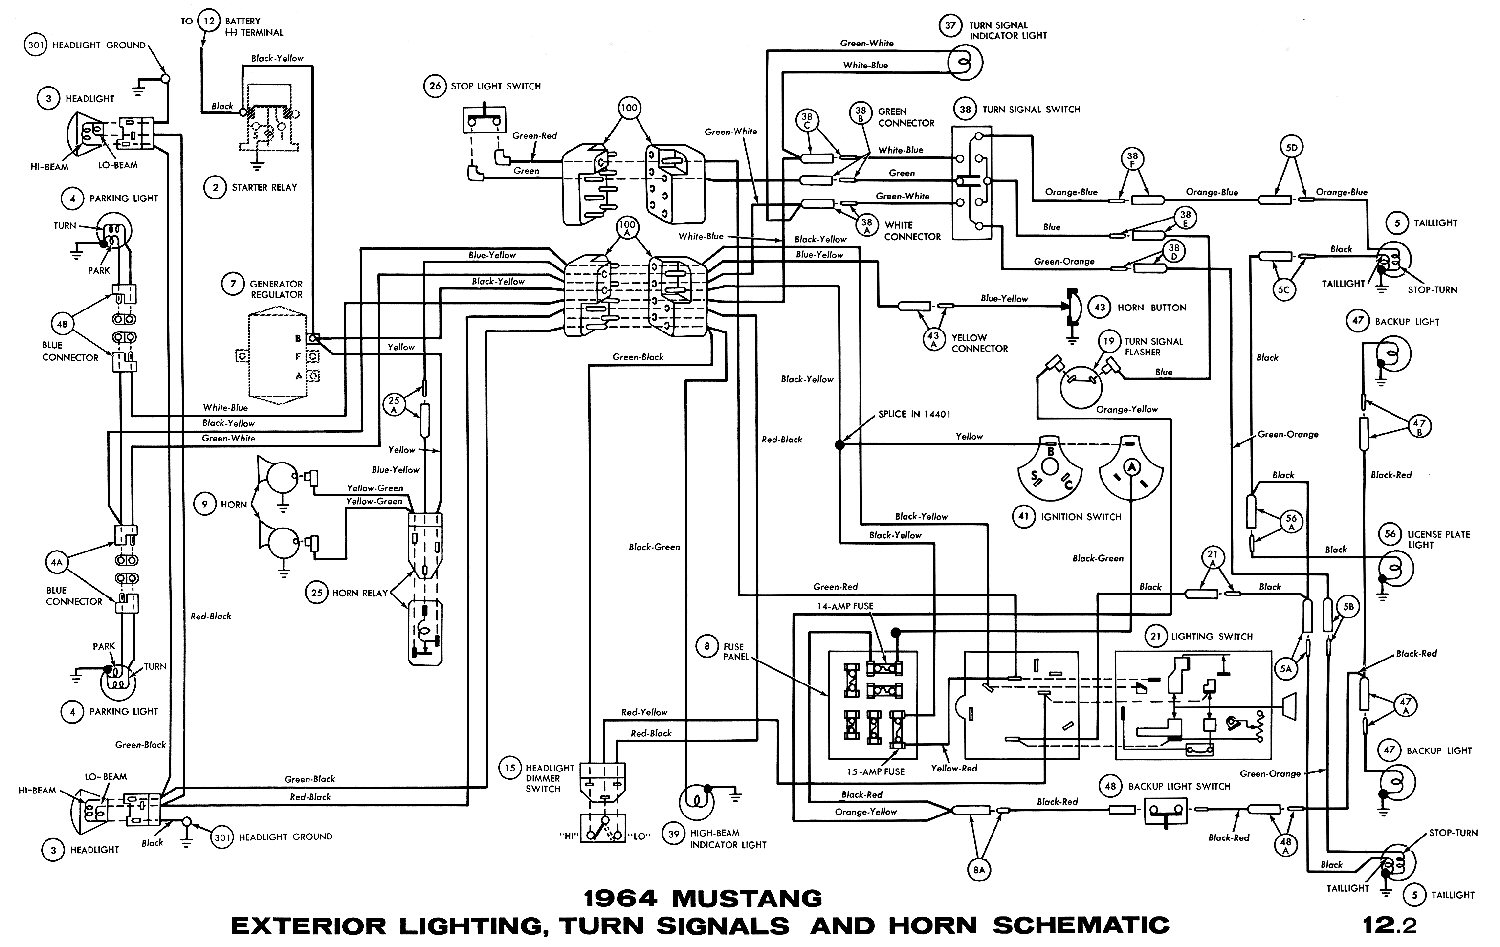 1964i 1964 mustang wiring diagrams average joe restoration 1965 mustang ignition switch wiring diagram at gsmx.co